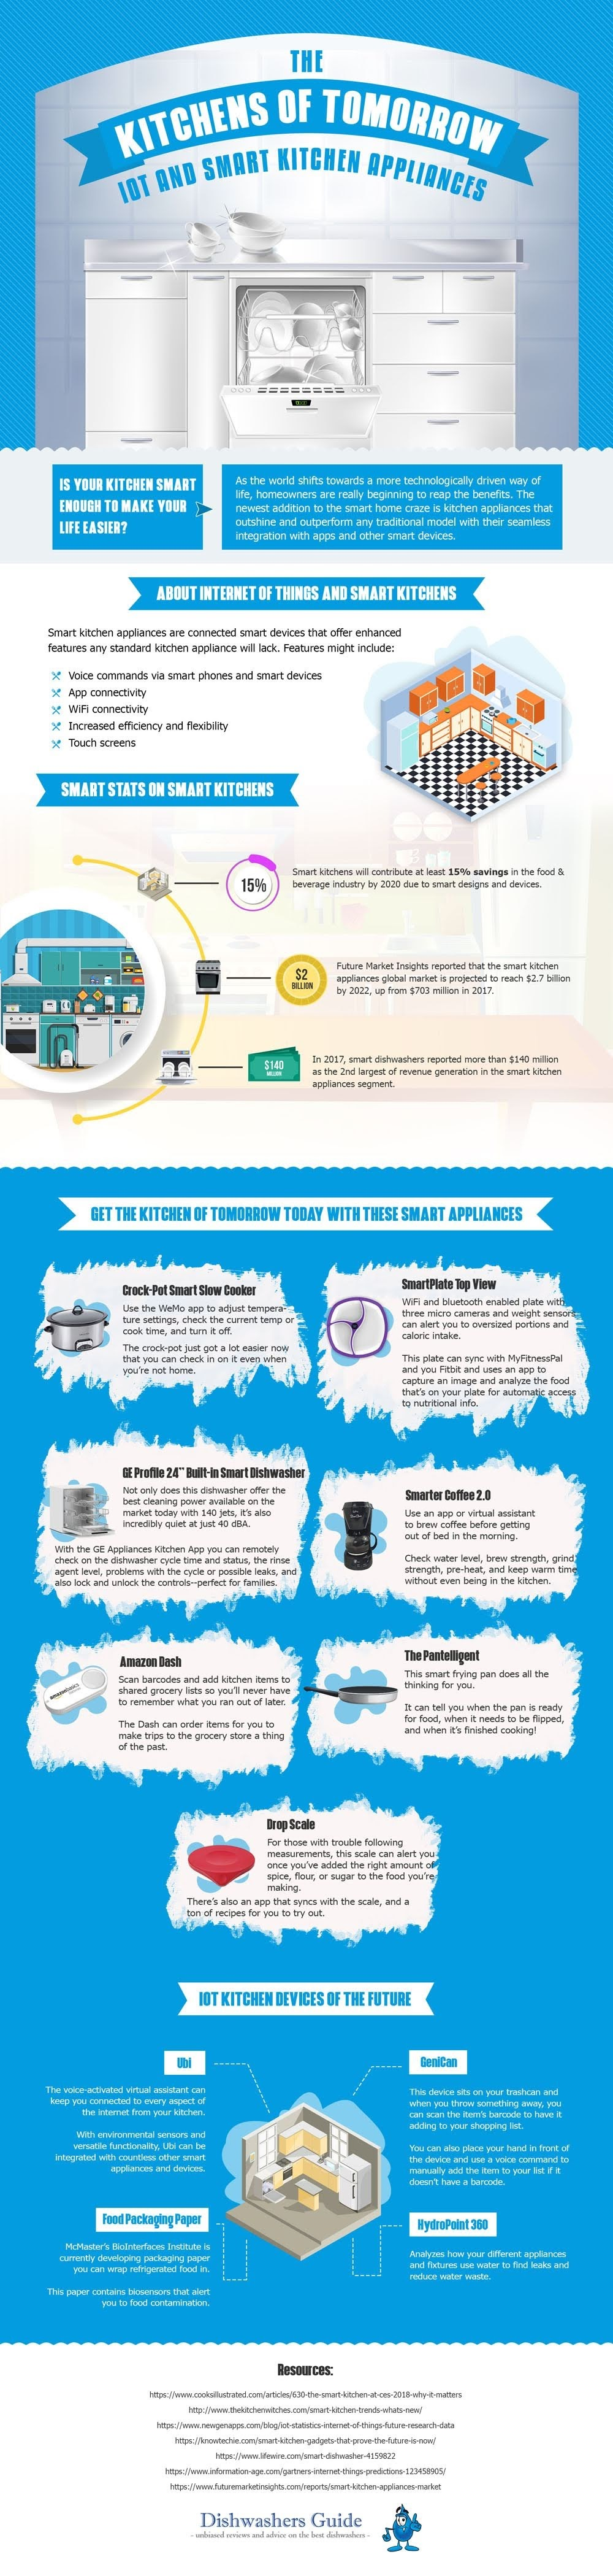 Future Kitchens of Tomorrow: IoT and Smart Kitchen Appliances #infographic